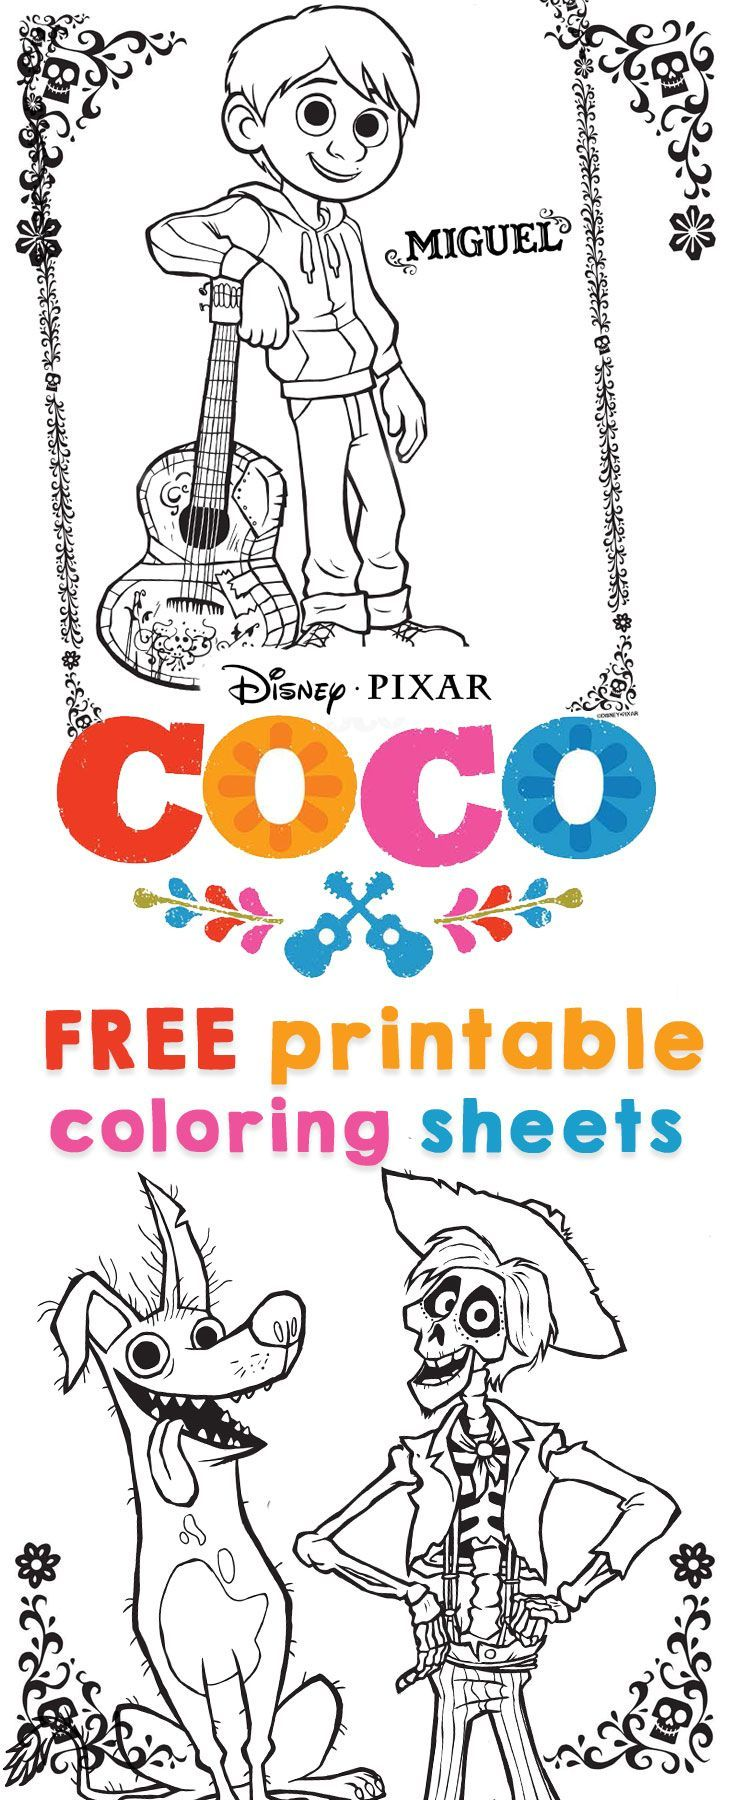 COCO Coloring sheets and activity